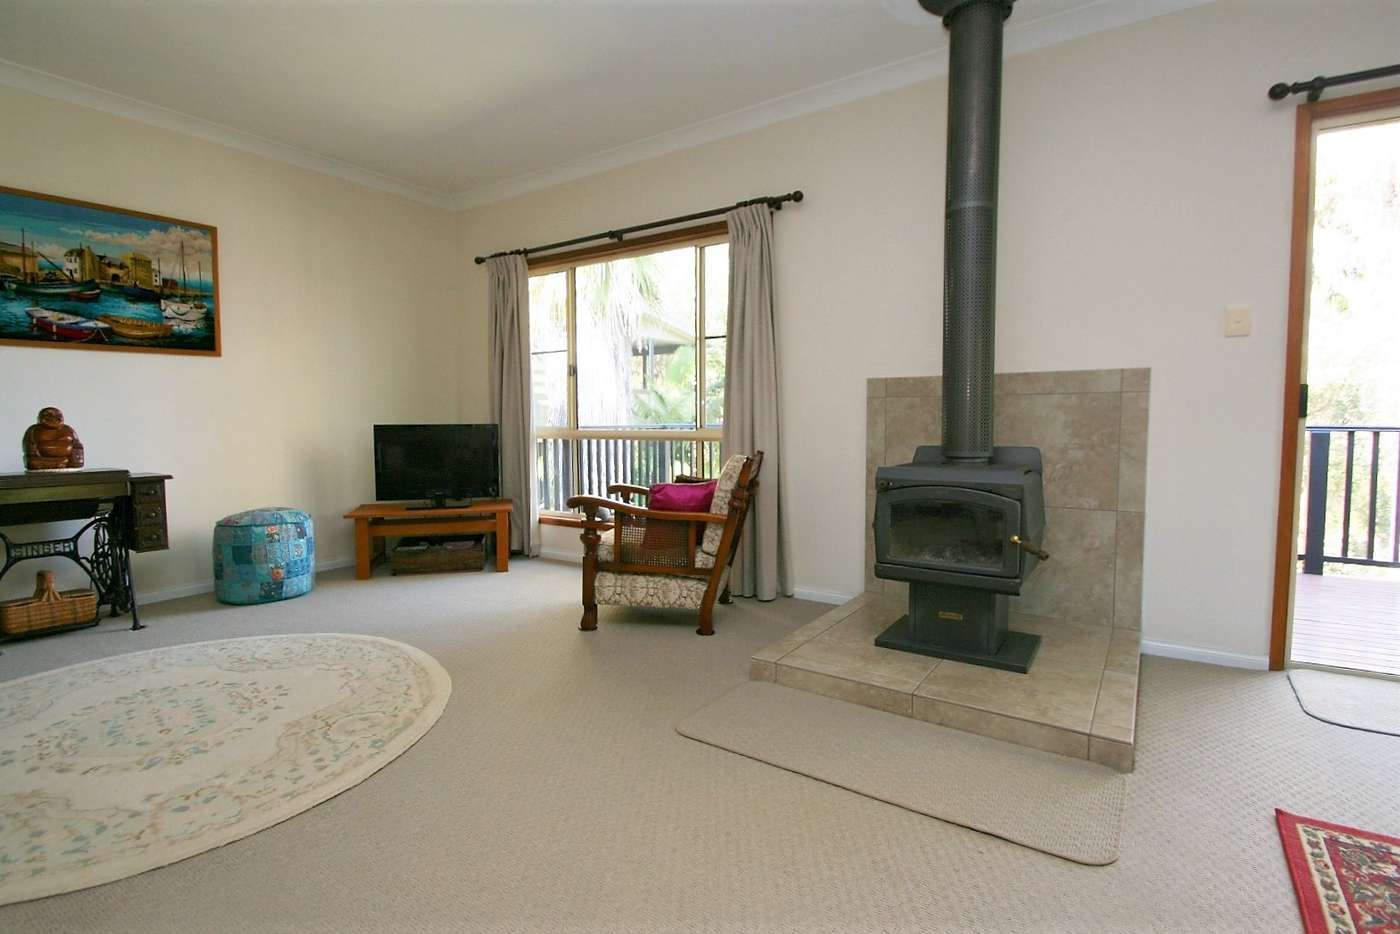 Sixth view of Homely house listing, 8 Phillip Road, Smiths Lake NSW 2428